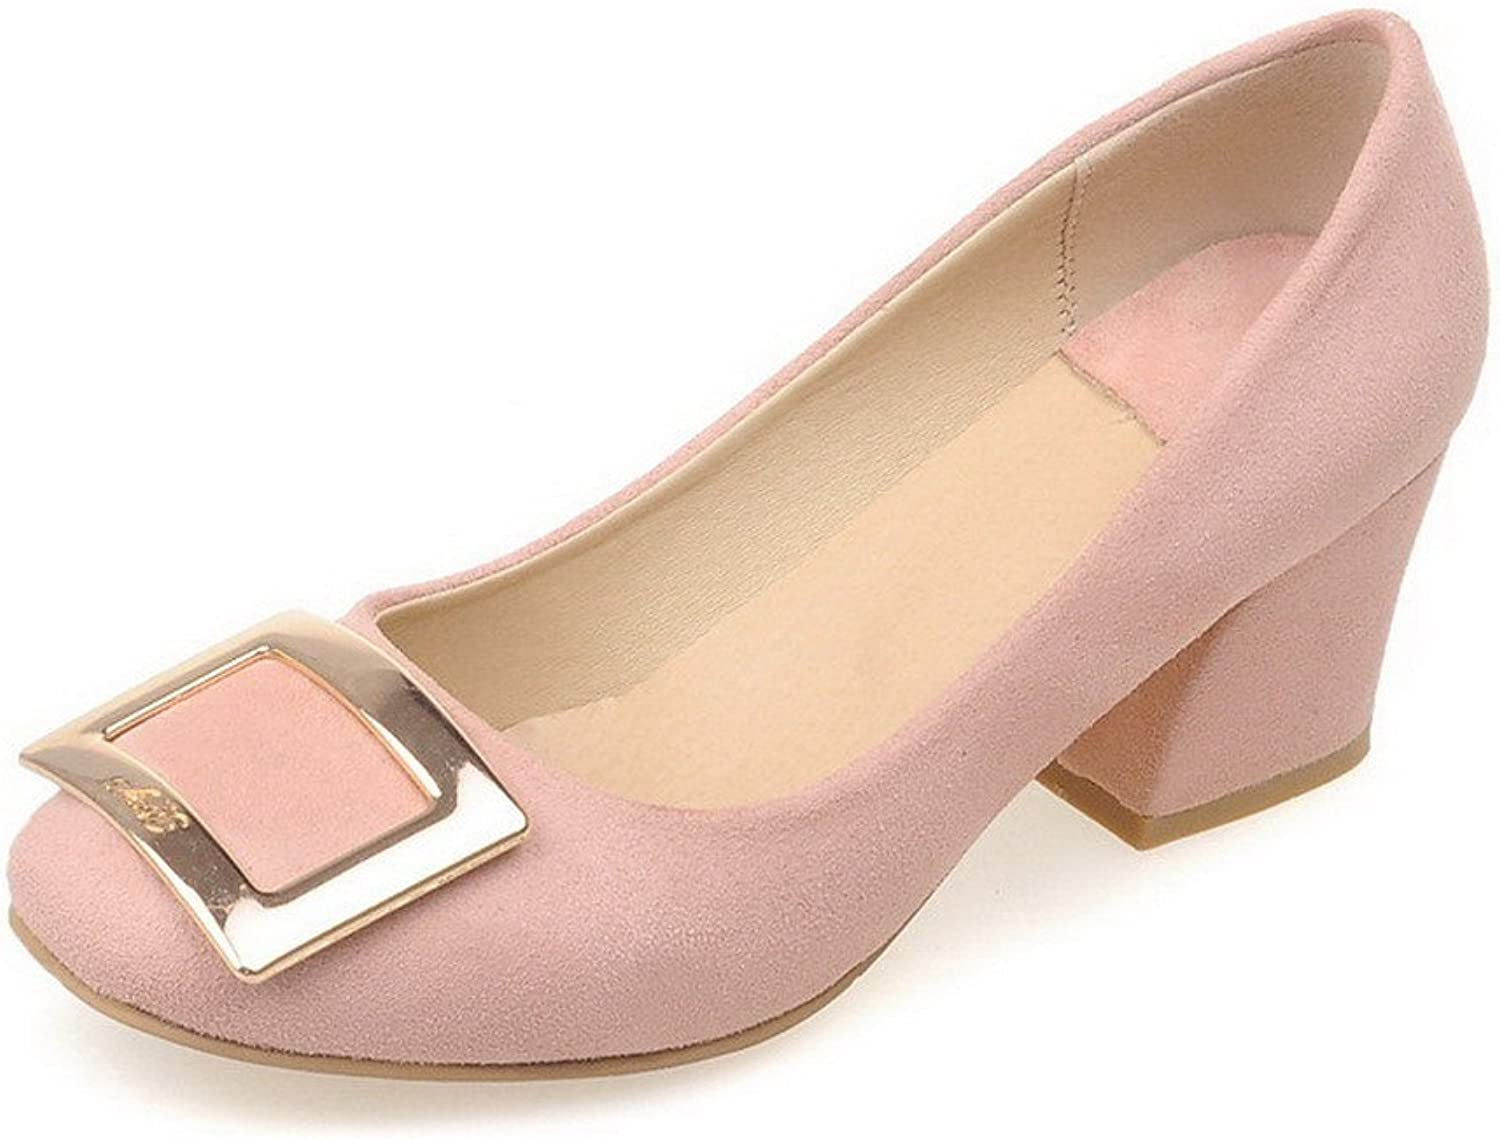 WeenFashion Women's Imitated Suede Kitten-Heels Square Closed Toe Solid Pull-on Pumps-shoes